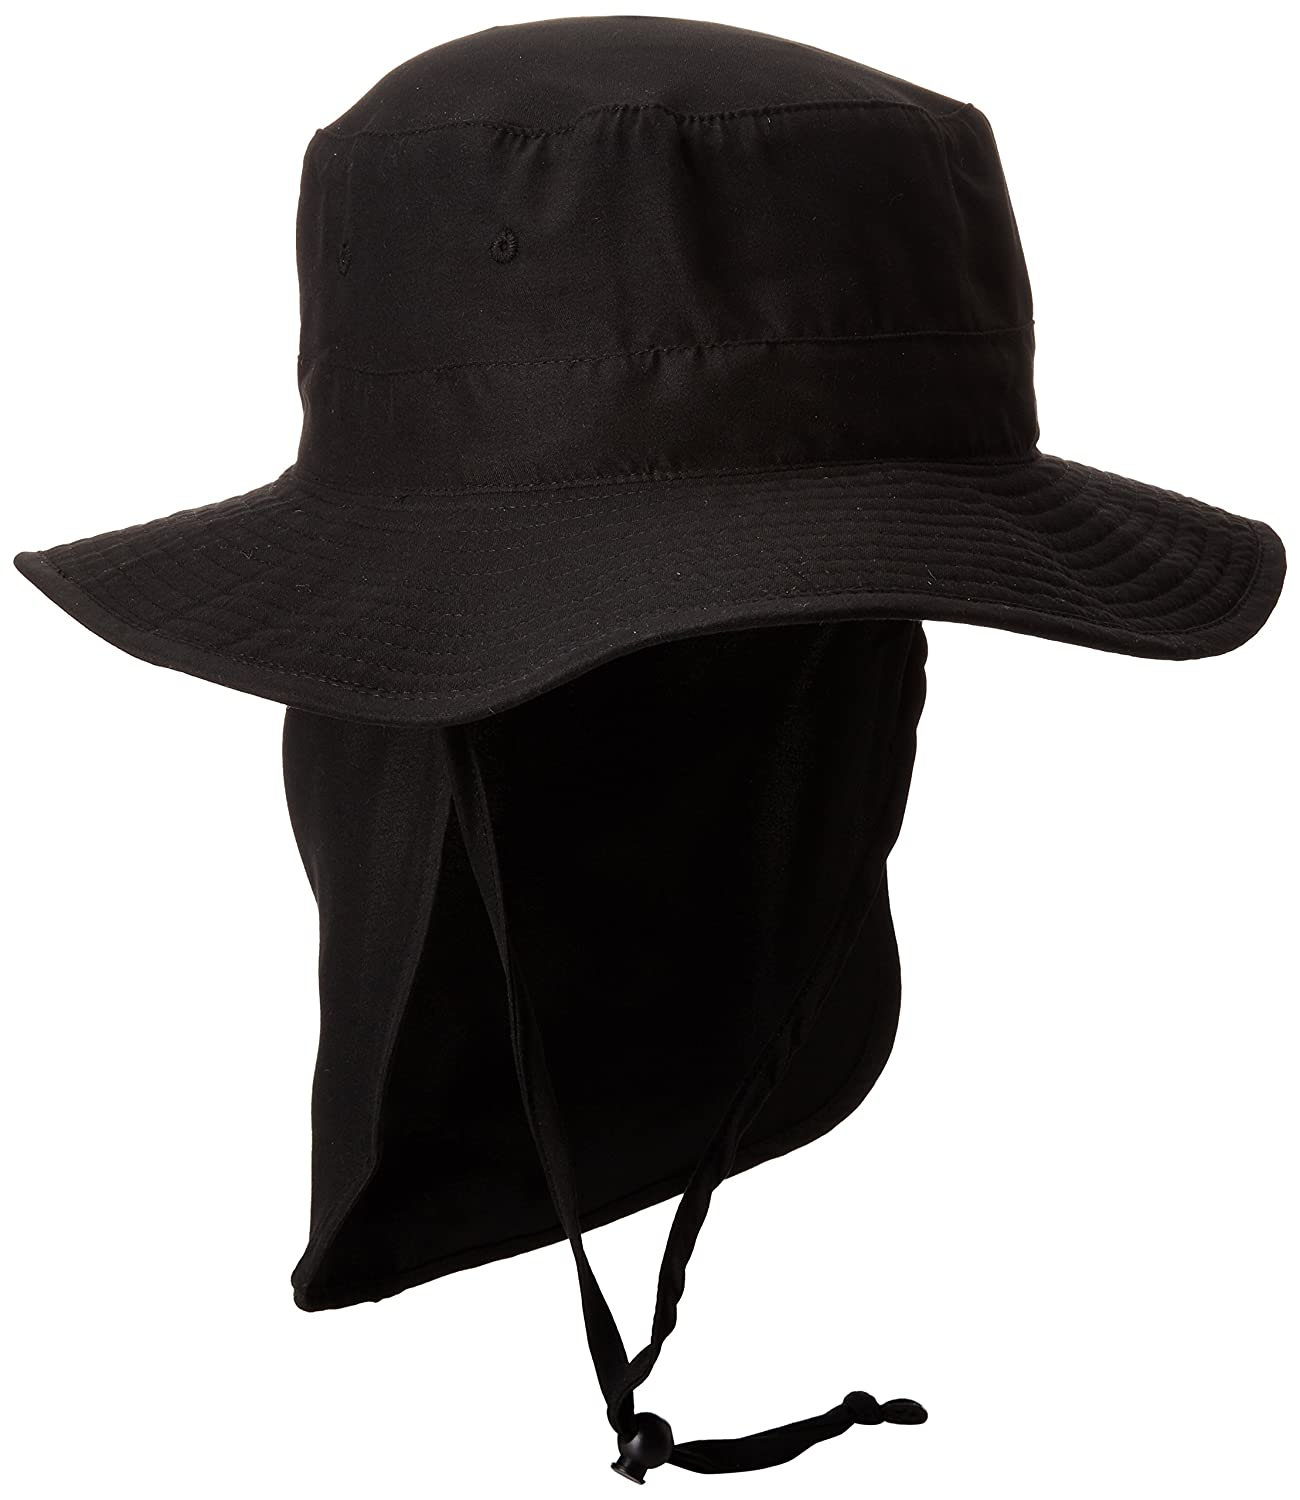 Dickies Men's Sun Hat Black S/M OB3M2KDIC00PP00